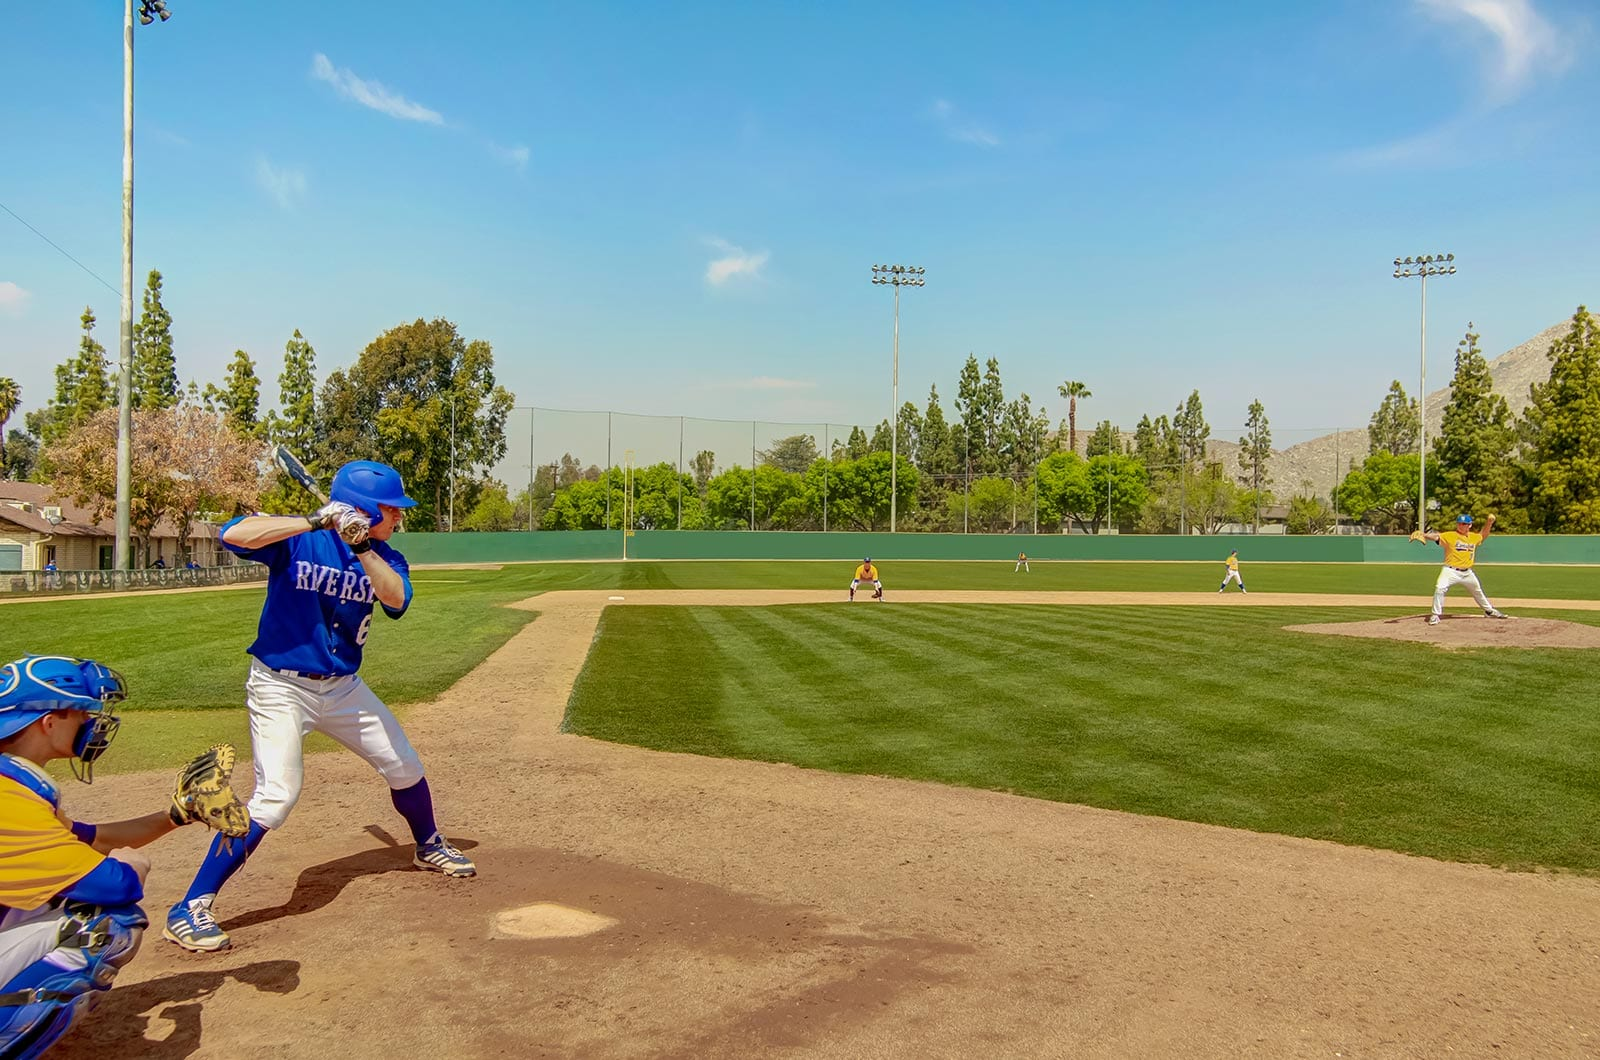 UCR-Baseball-Team-At-Action-360-Tours-Virtual-Tour-Company-College-Vitual-Tours-Virtual-Tours-For-College